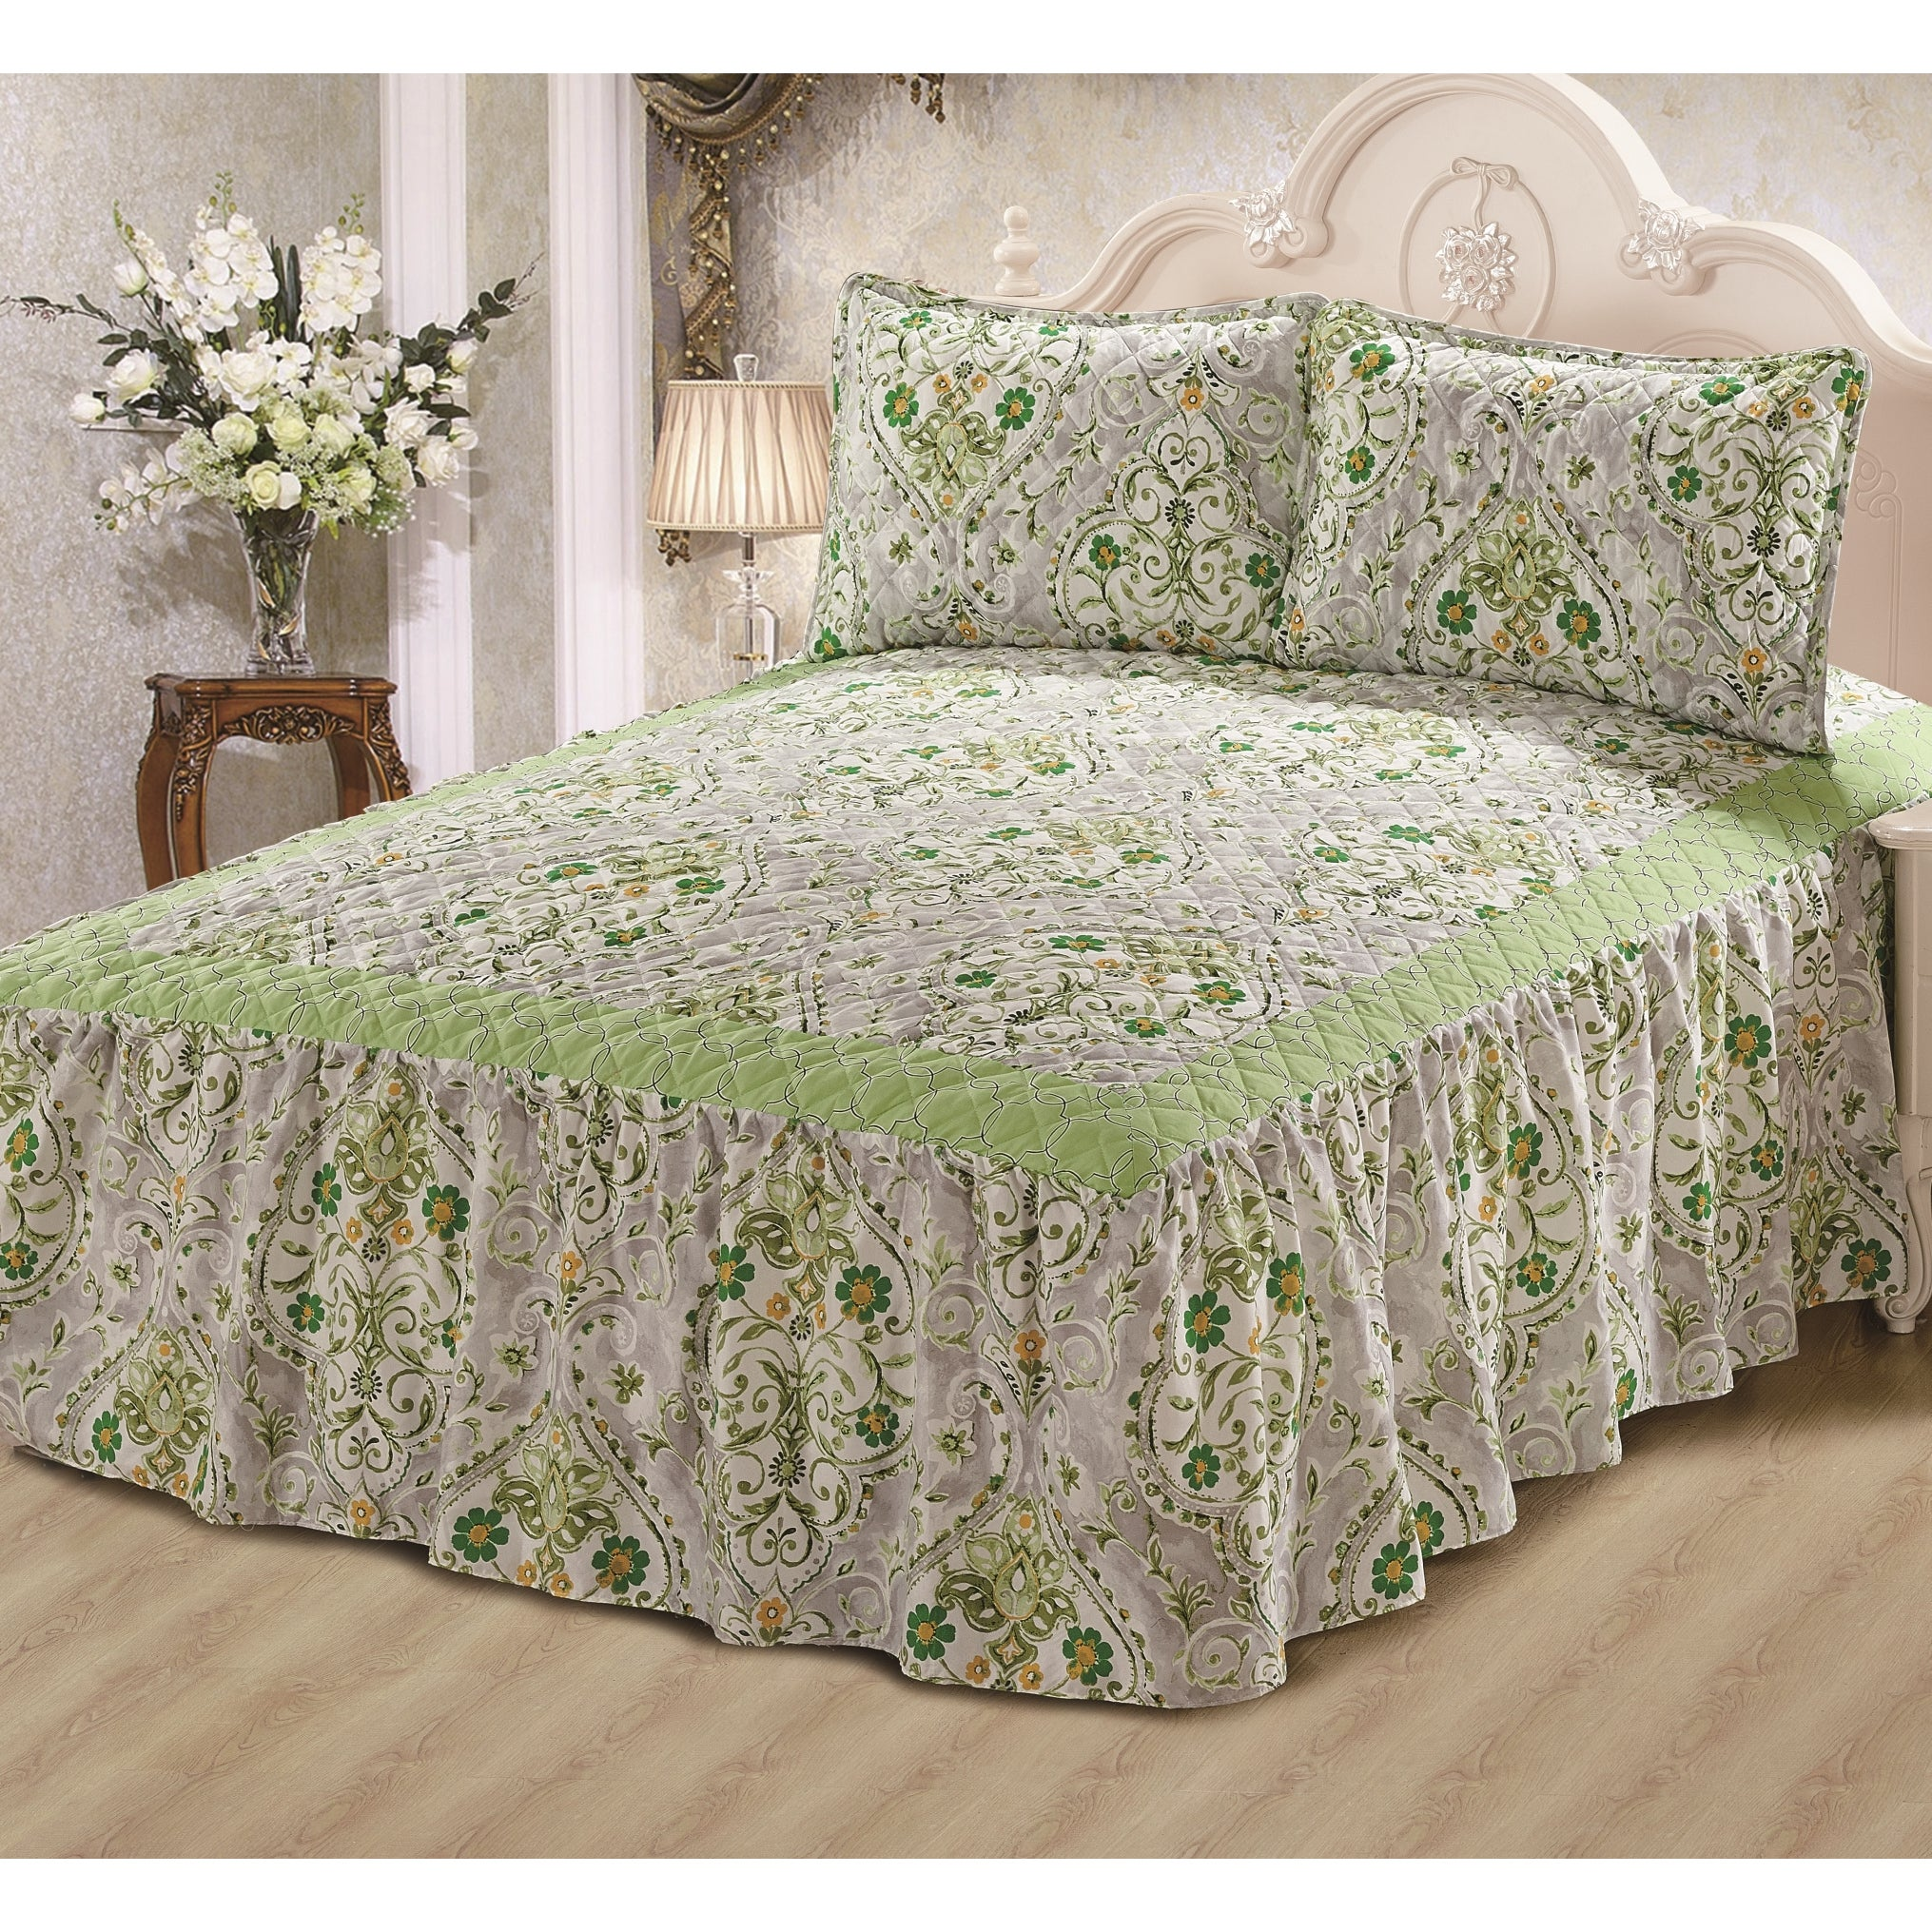 cover also twin conjunction in of forest green seafoam set and nursery grey with mint comforter quilt together queen bed sets sage target light emerald plus bedding duvet size full beddings